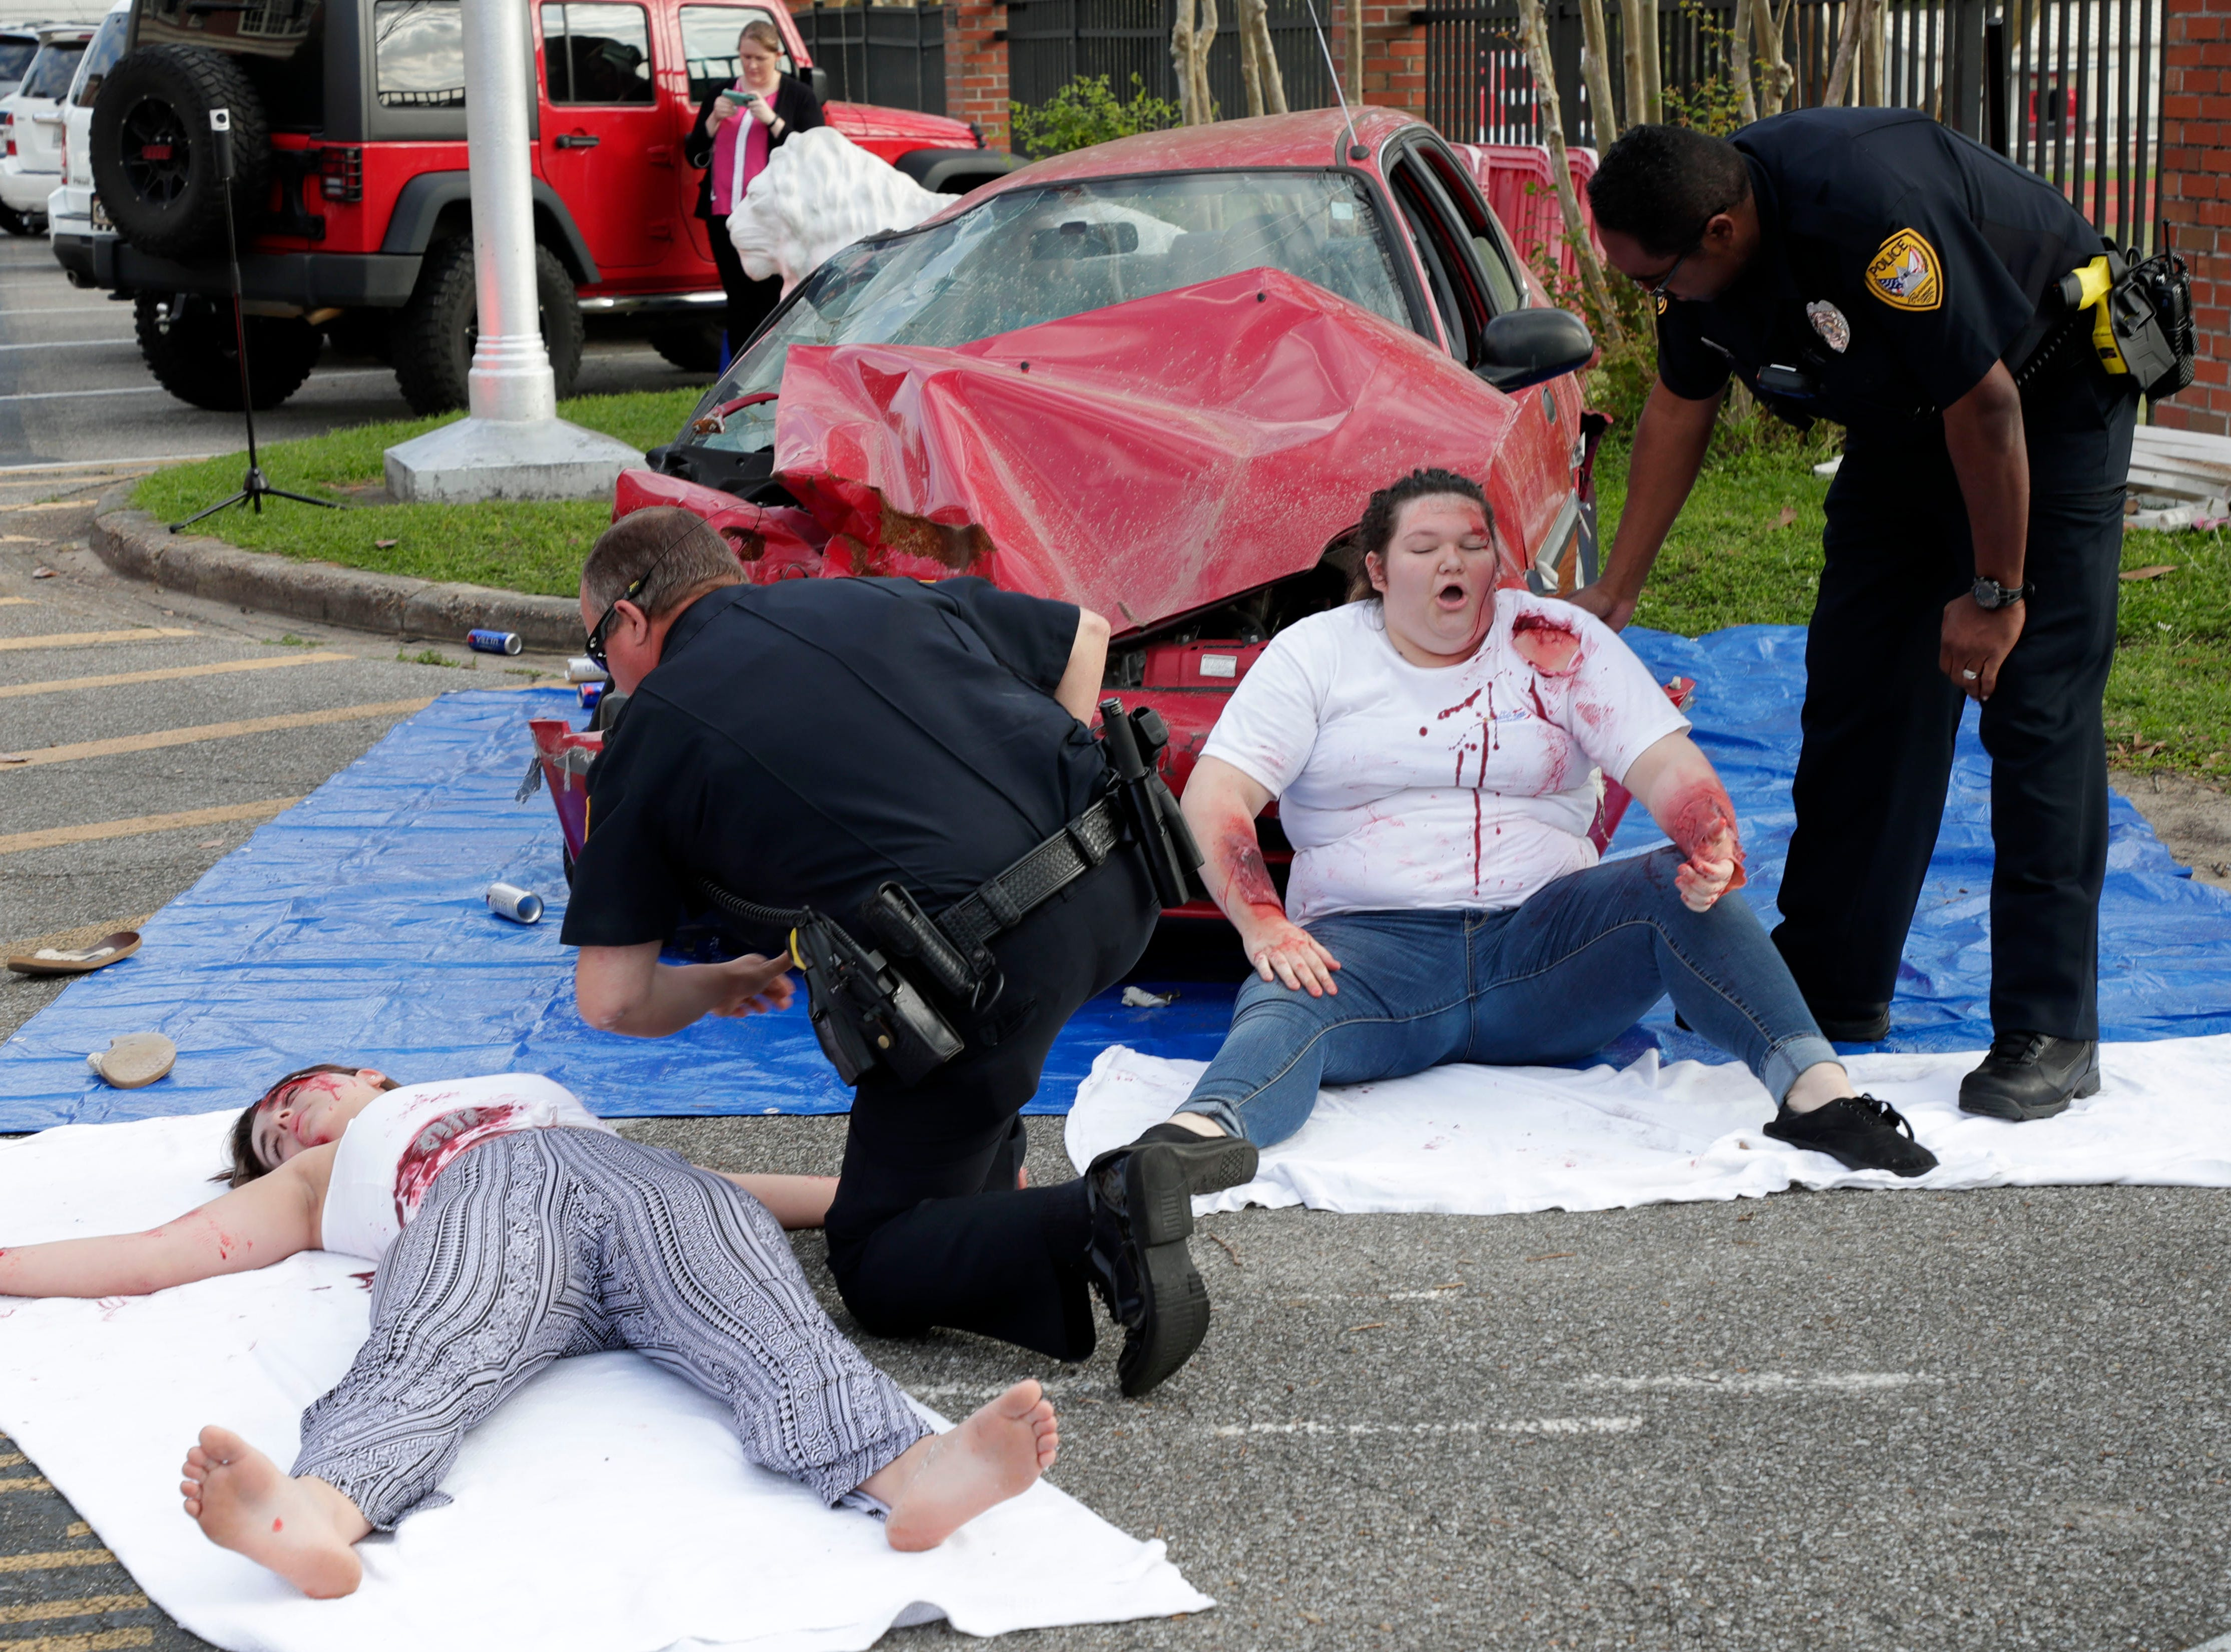 Police offers check on Christina Huettel, left, and her friend Caitlyn Burke as the teens portray people involved in a drinking and driving accident. Leon High School partners with the county safety officials to give a simulation on the consequences of drunk driving before the students leave for spring break Friday, March 15, 2019.